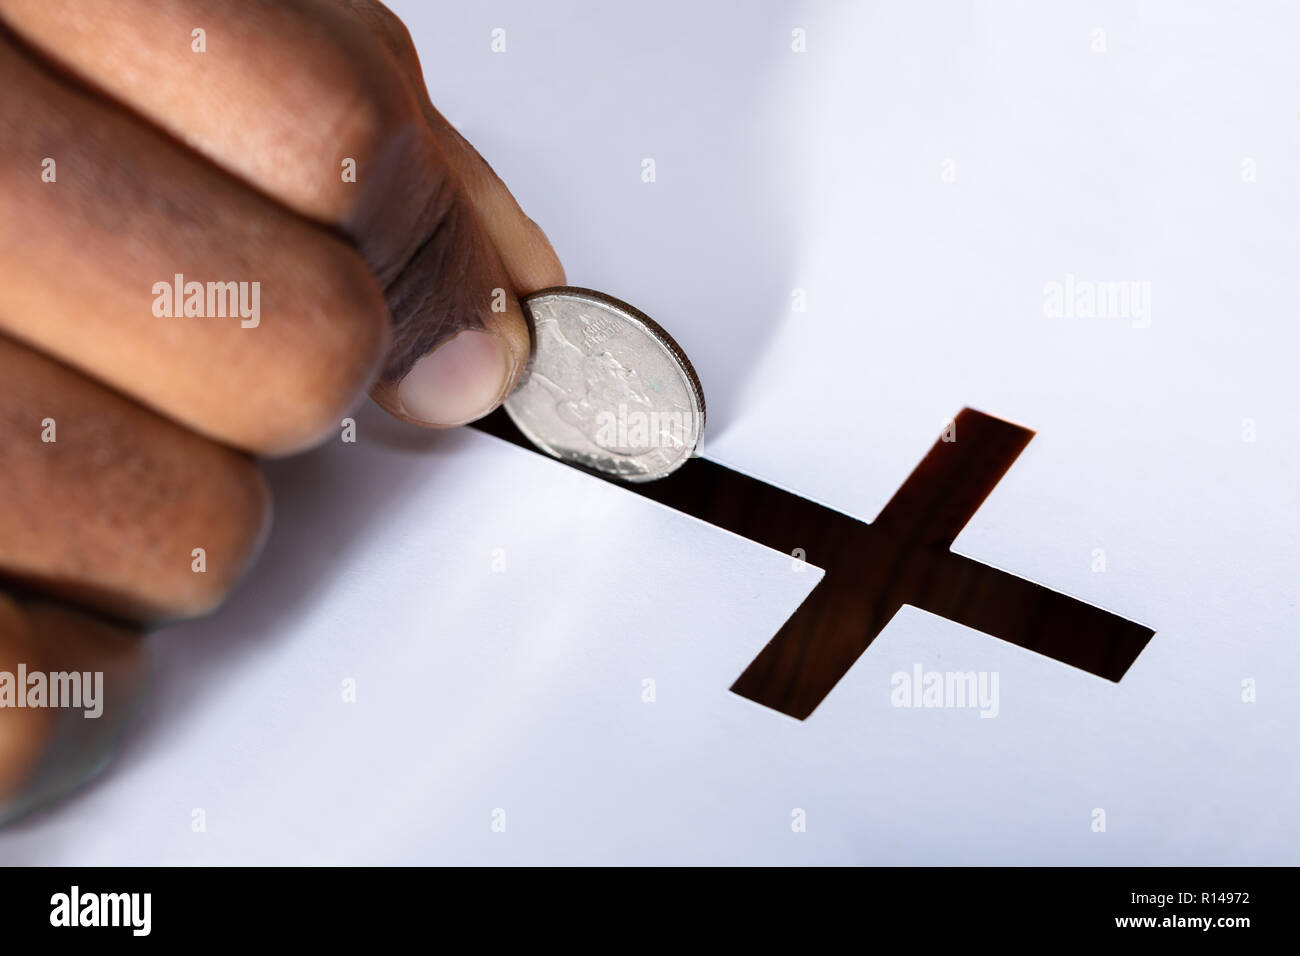 Close-up Of A Person's Hand Inserting Coin In Crucifix Slot Stock Photo